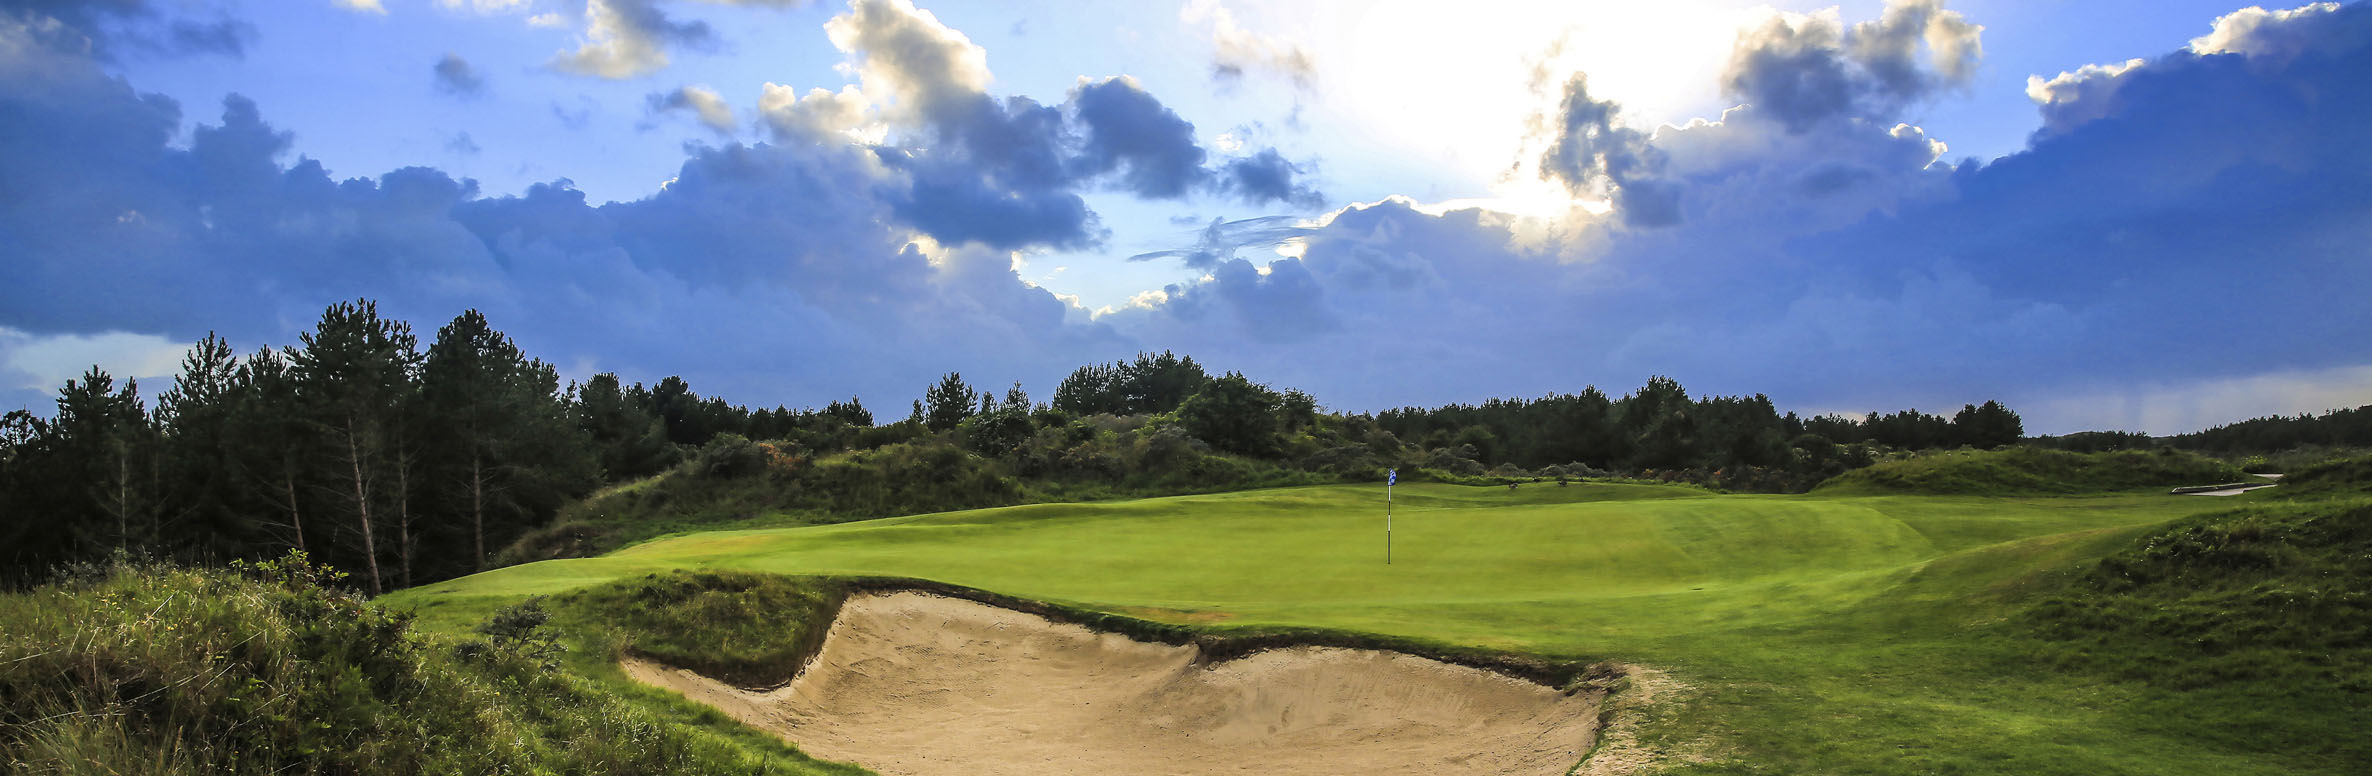 Golf Course Image - Le Tourquet Golf Club – La Mer No. 10